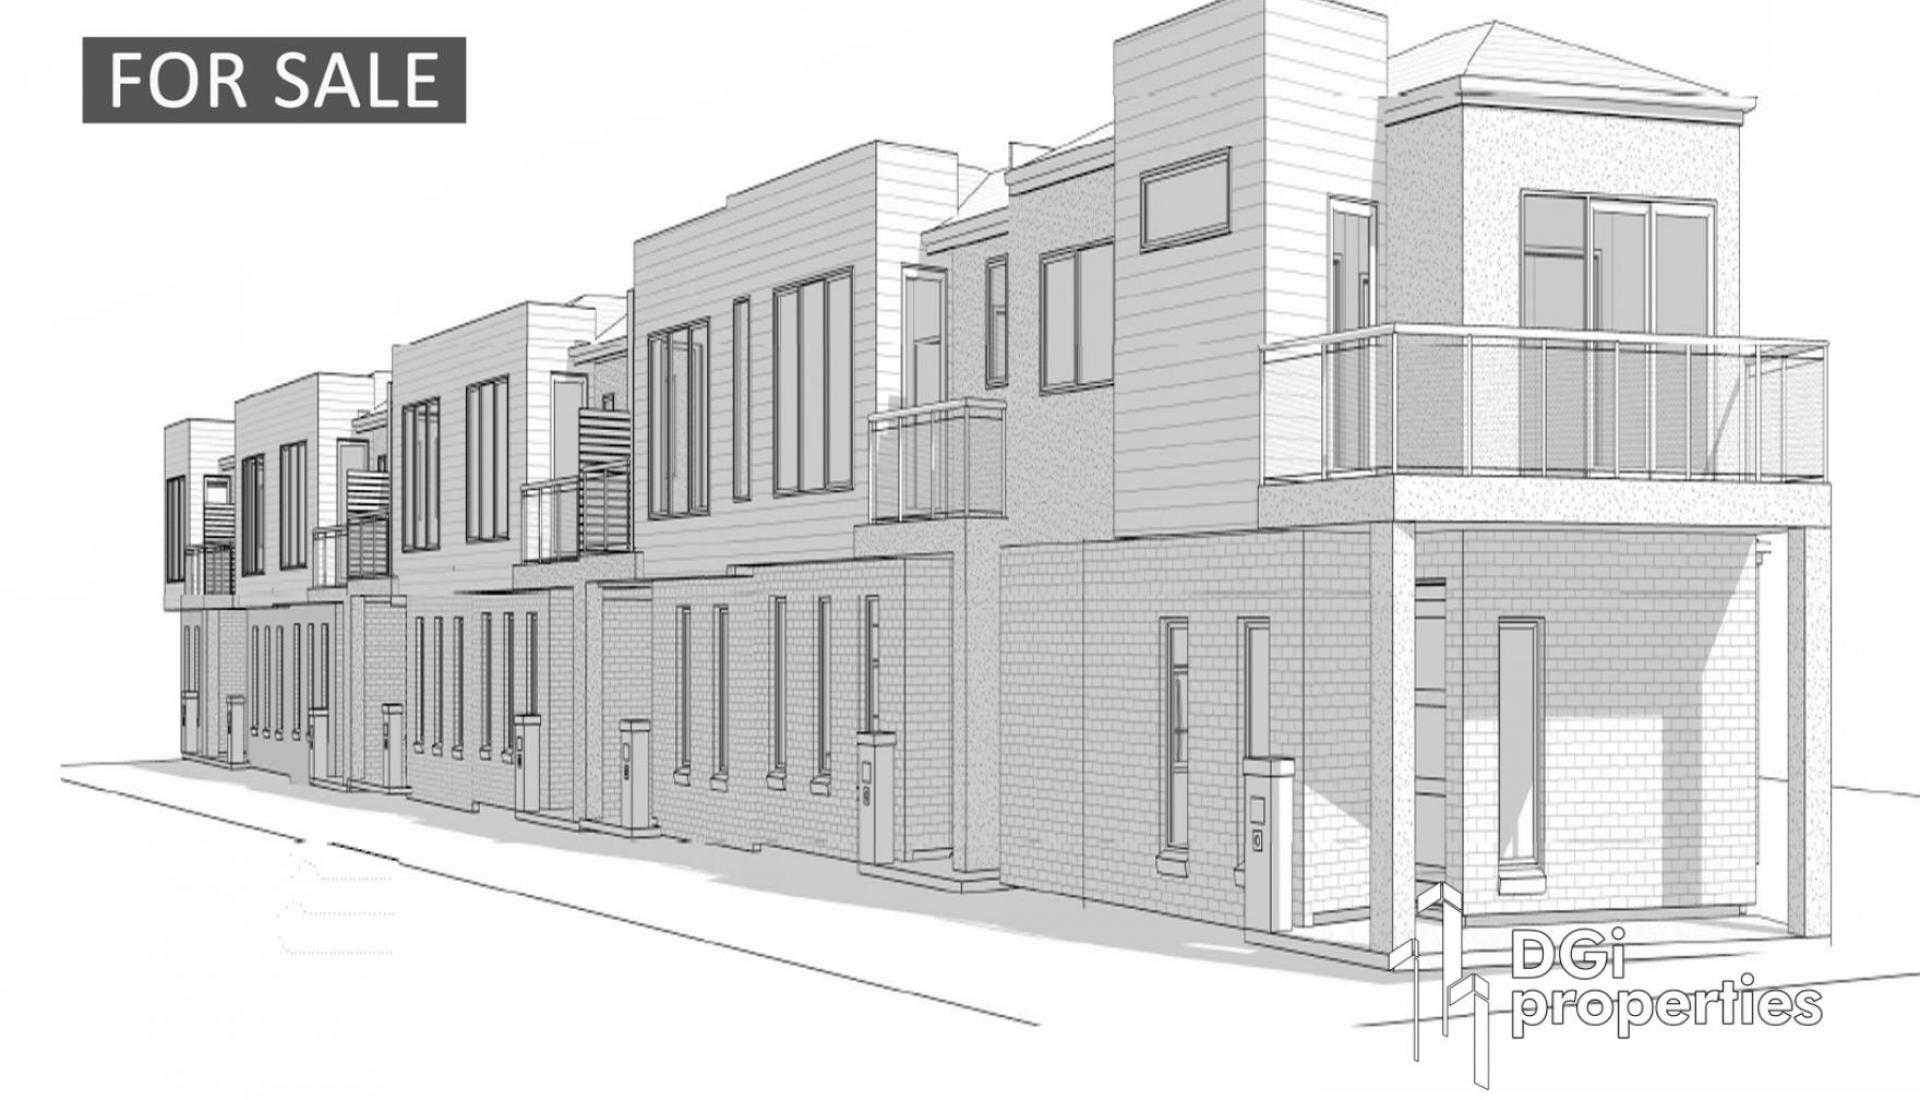 PLANS & PERMITS FOR 8 TOWNHOUSES